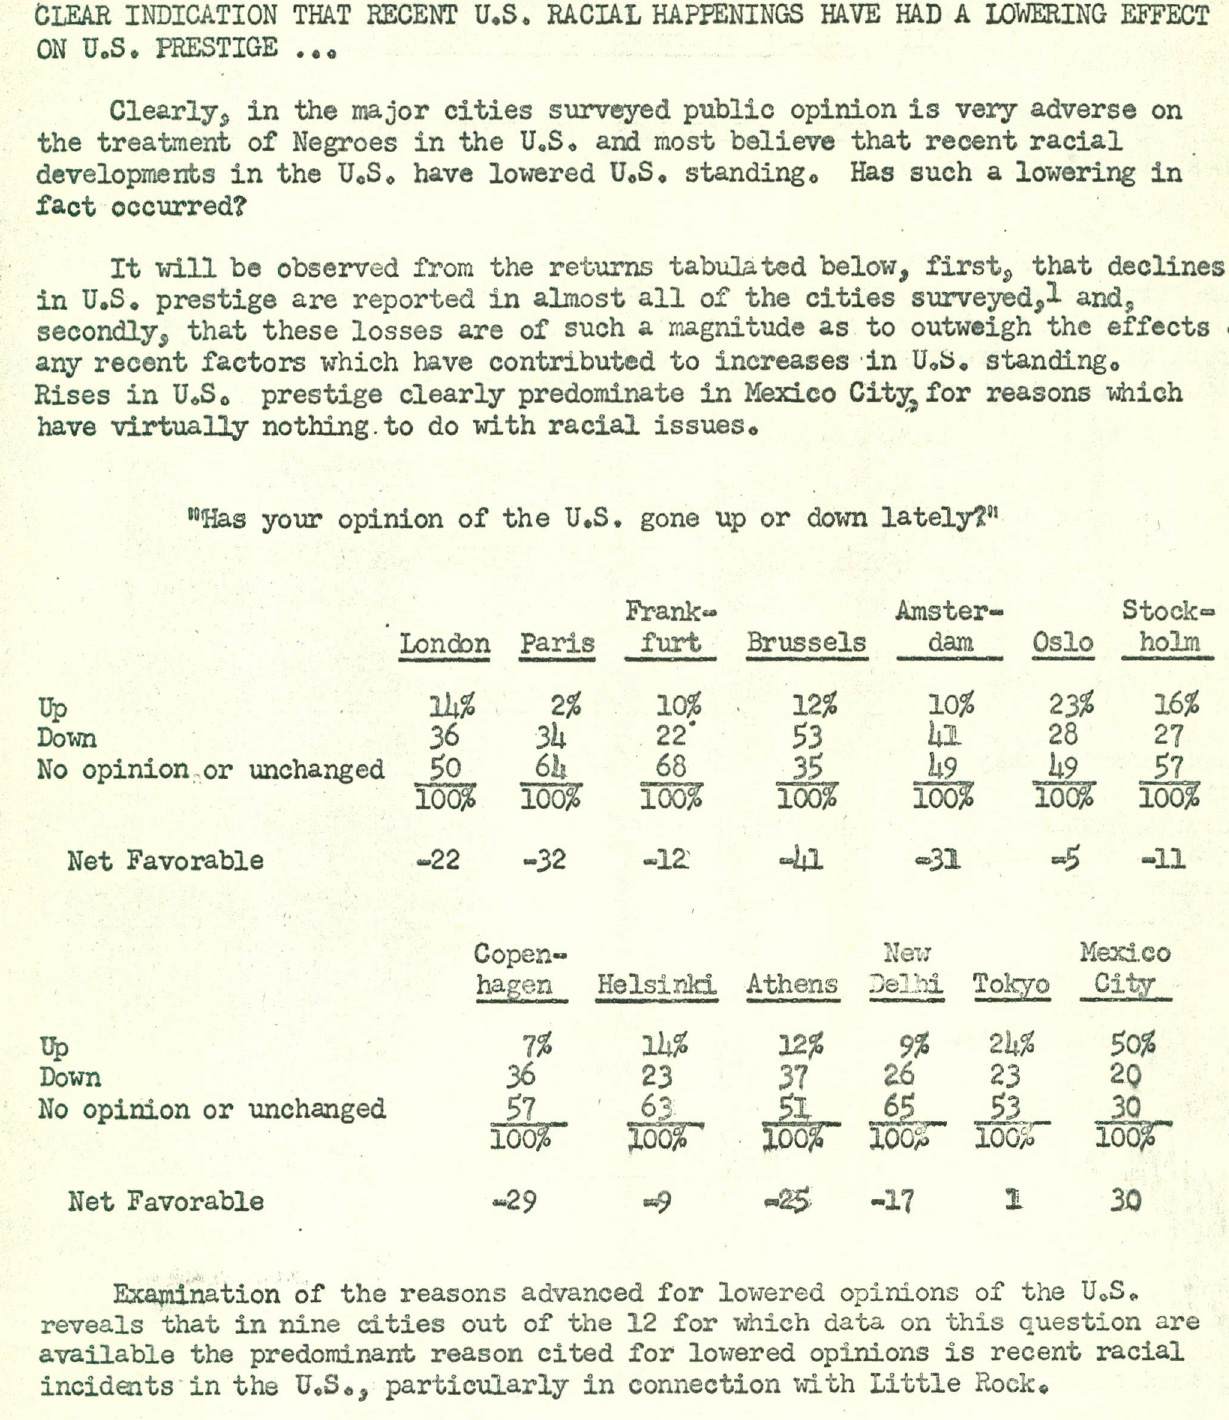 world opinions of US after little rock 1957